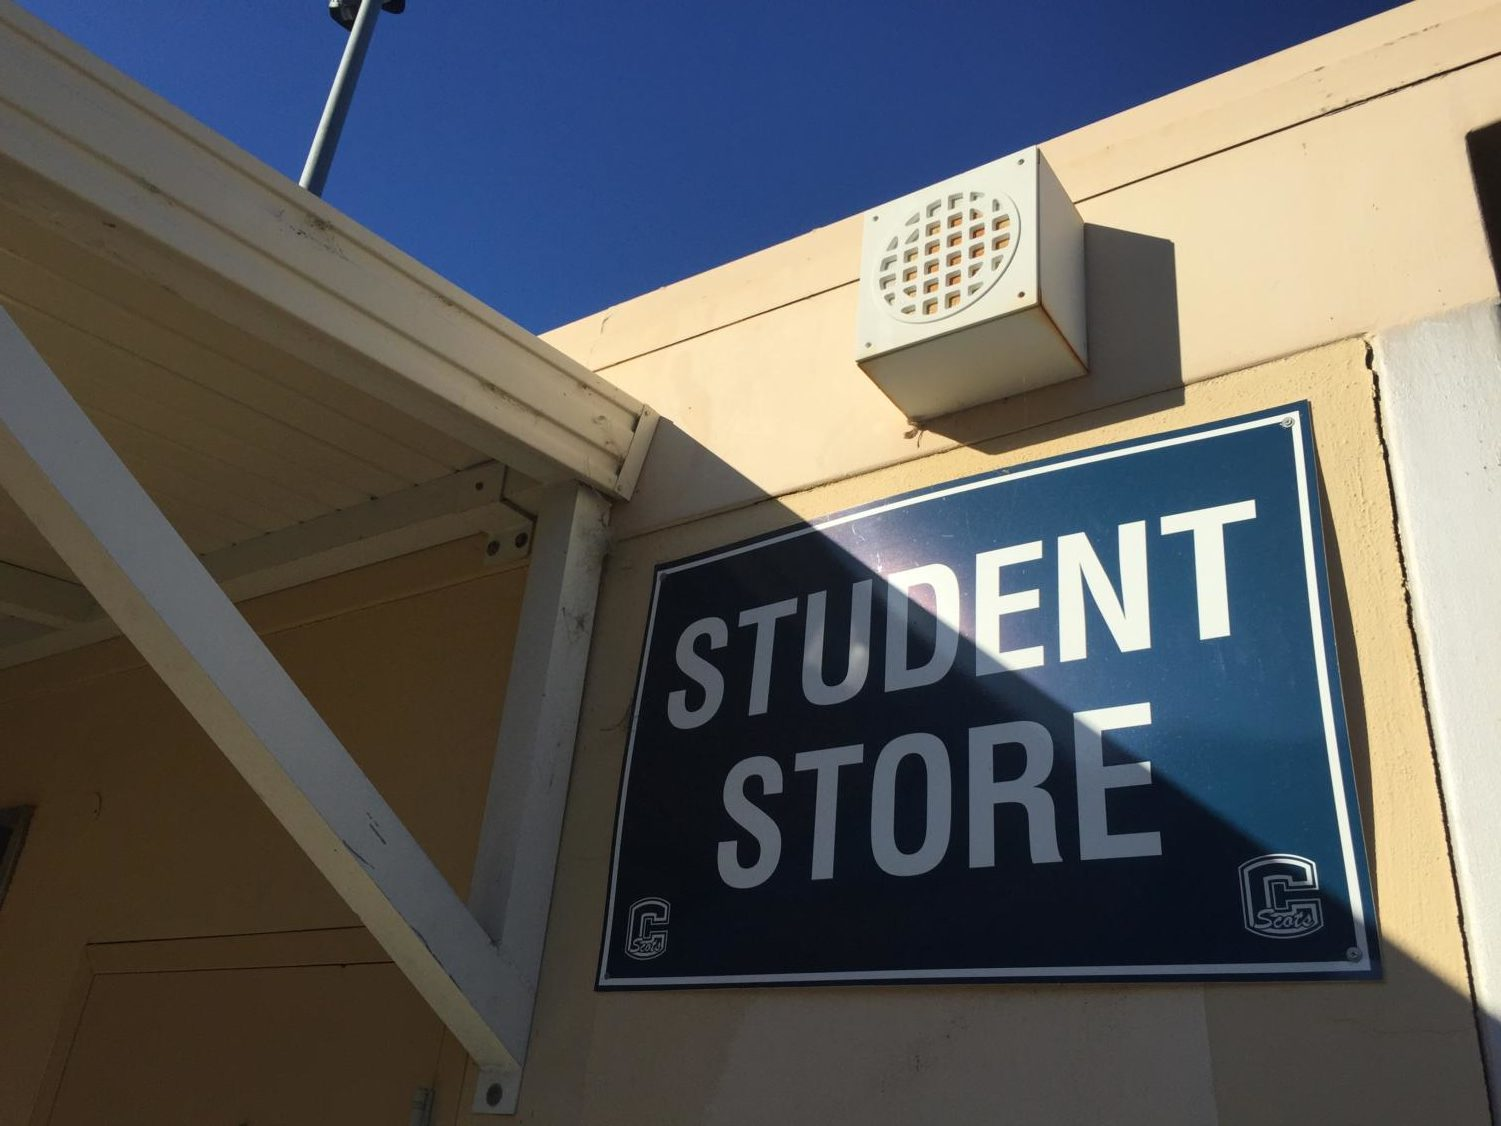 The Student Store is located in the Quad above the football bleachers.